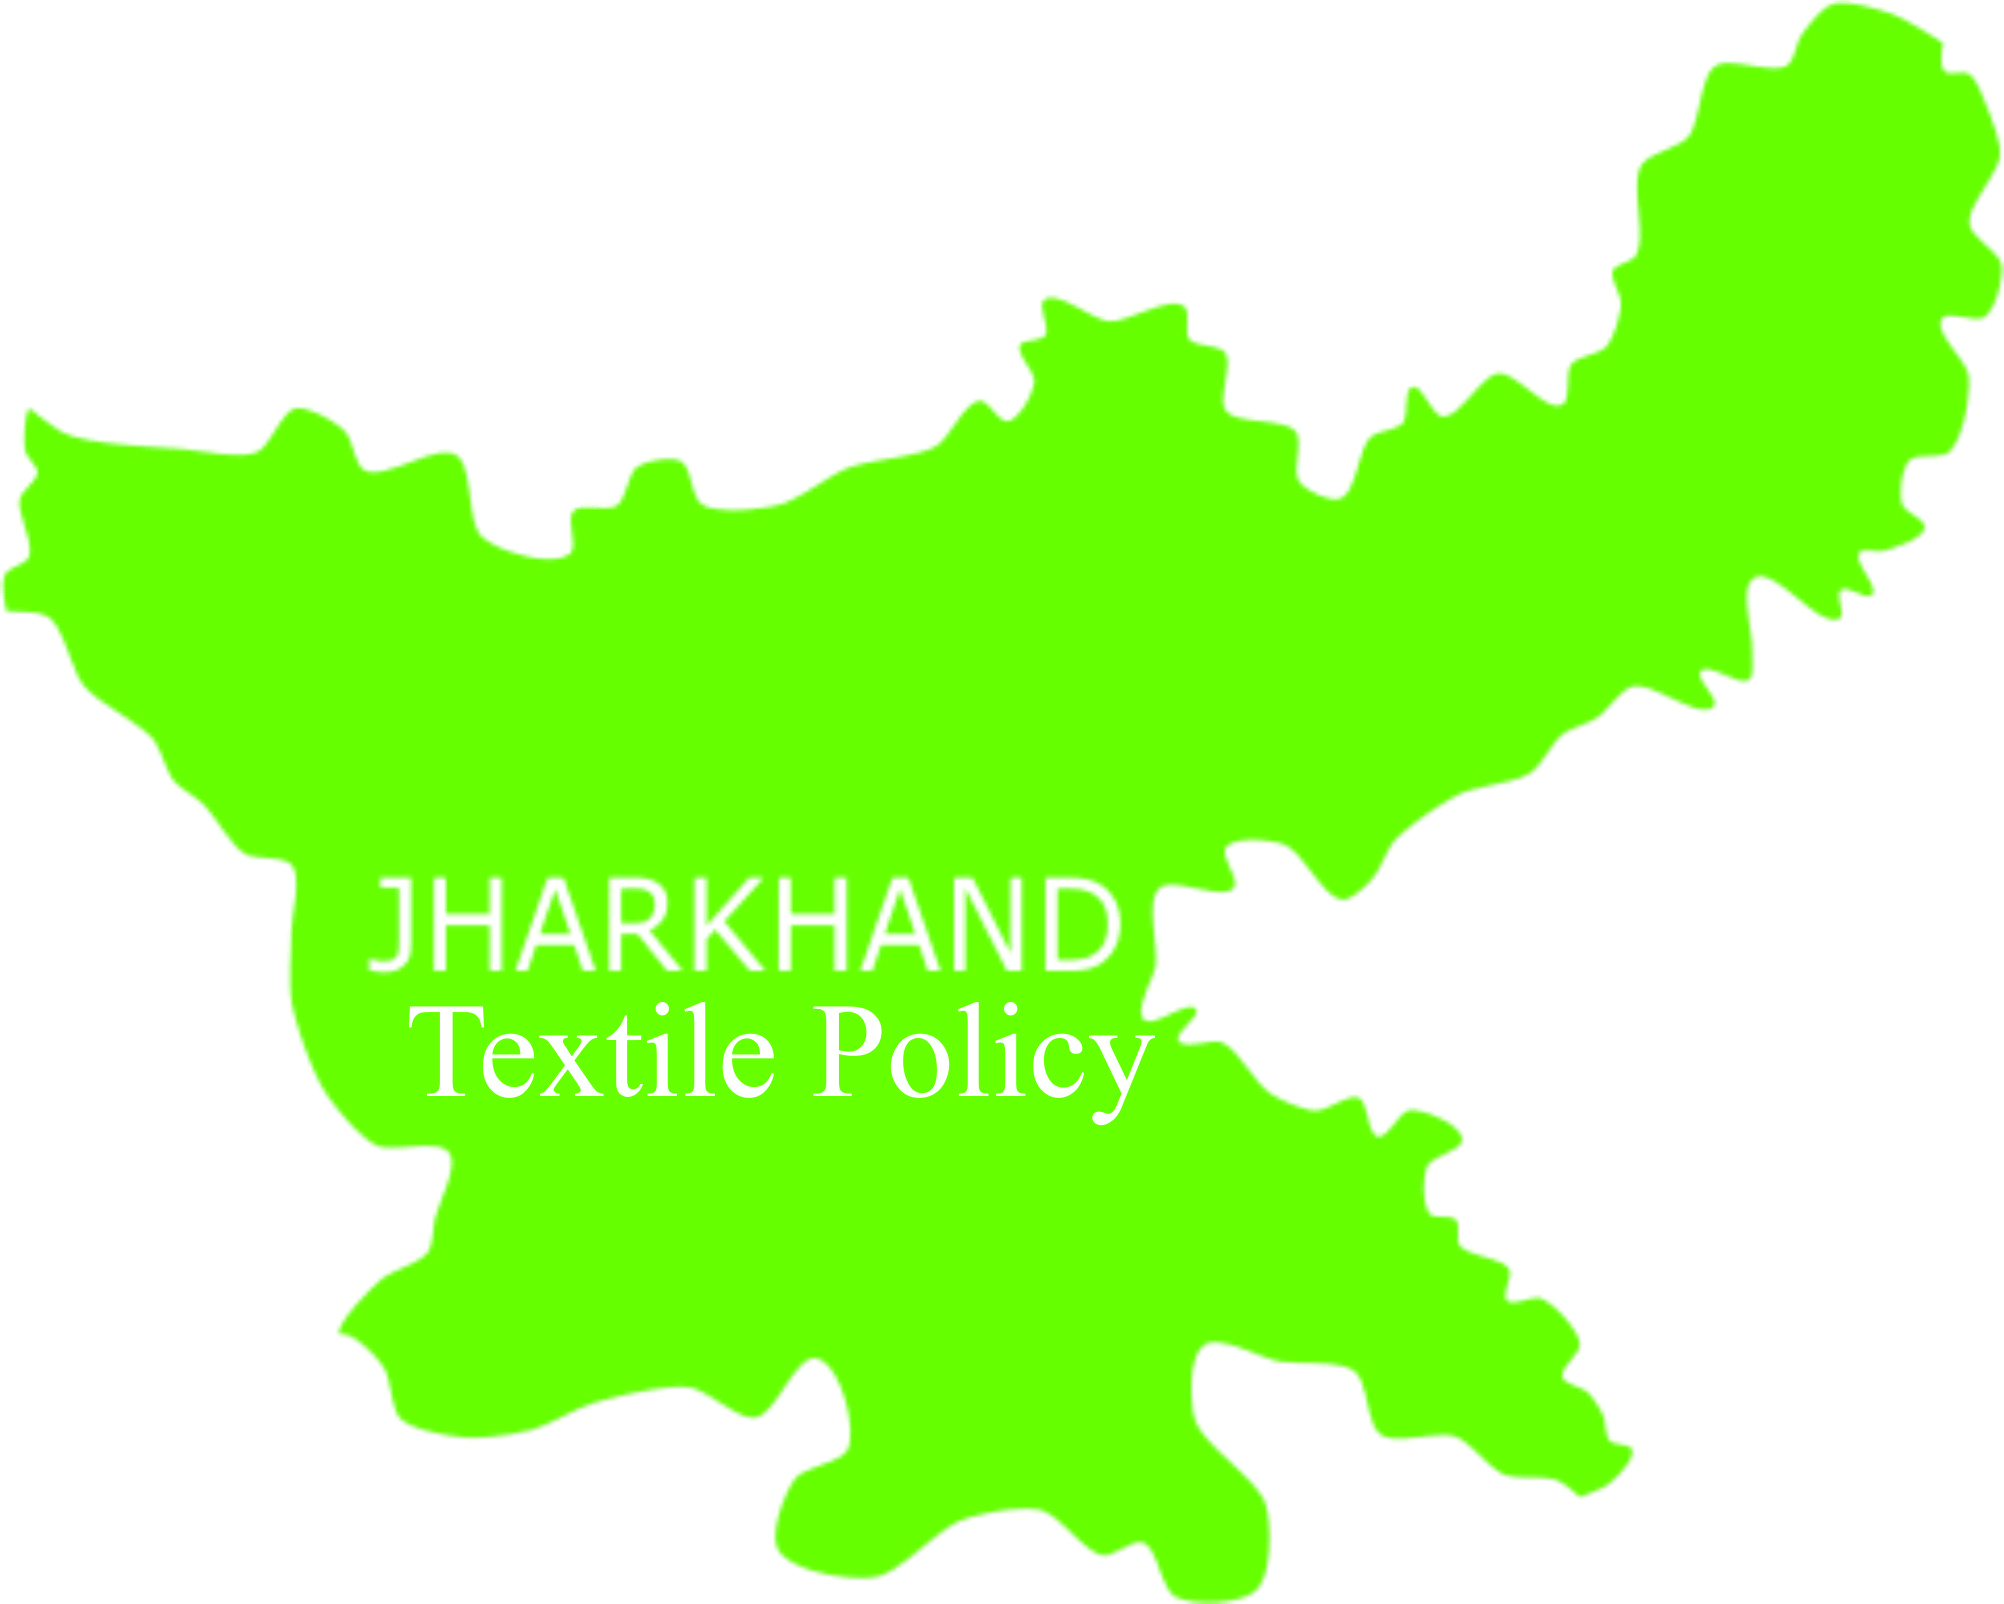 Jharkhand Textile Policy